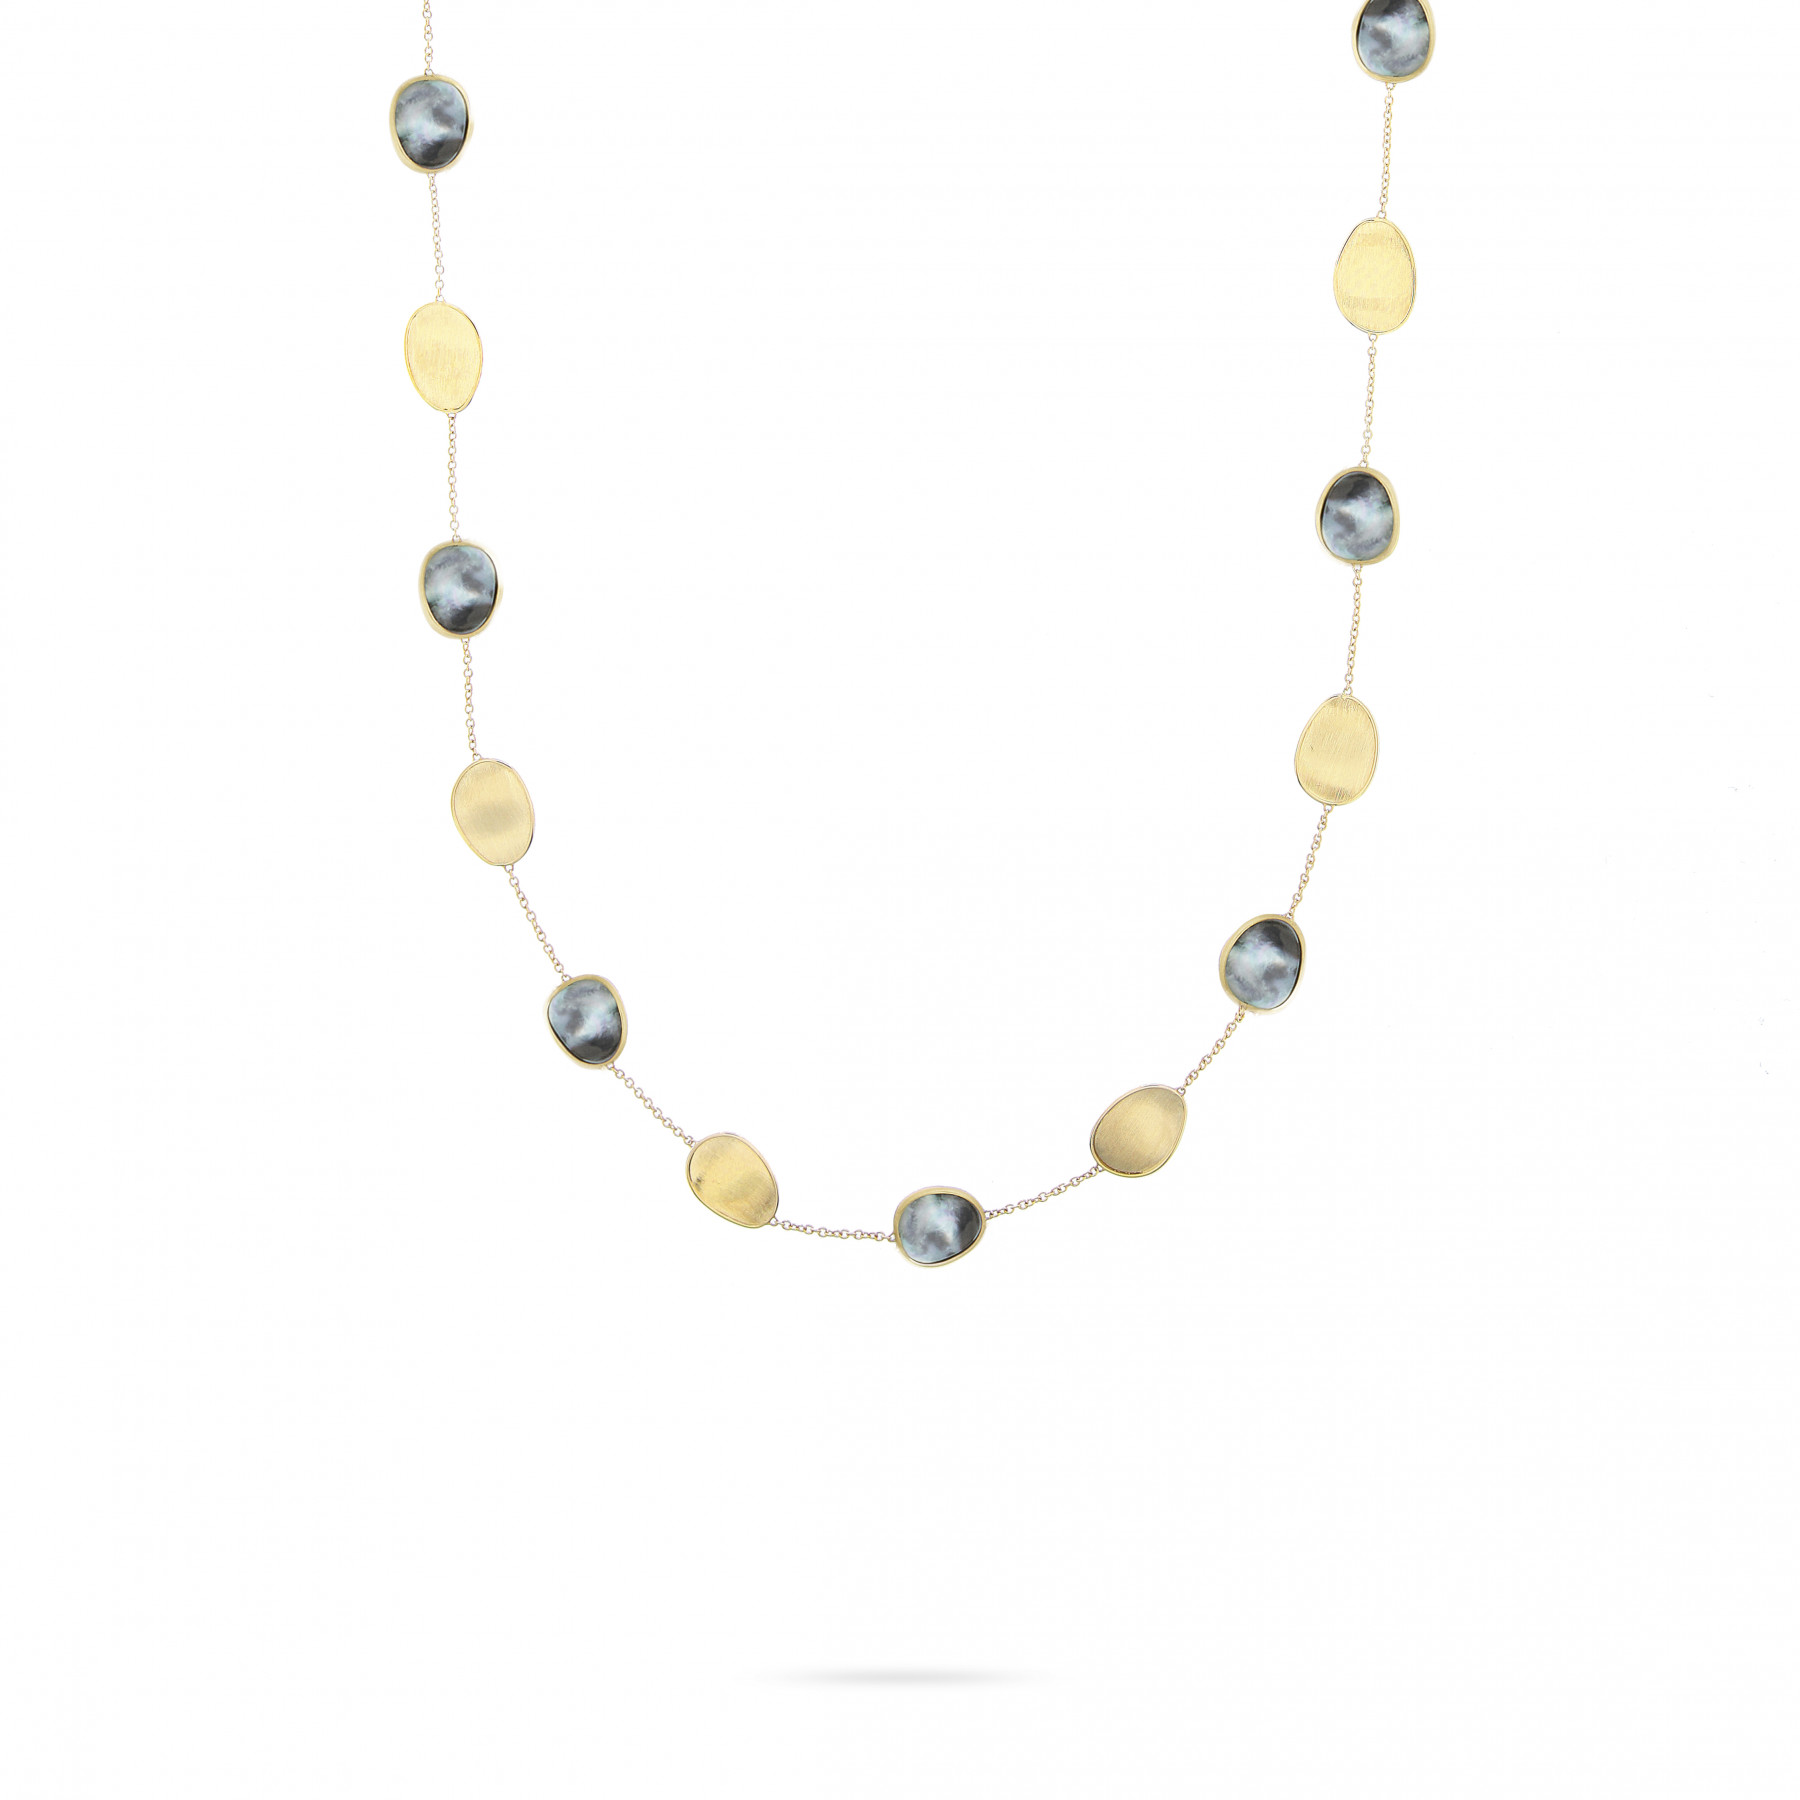 Marco Bicego Lunaria Black Mother of Pearl Station Necklace